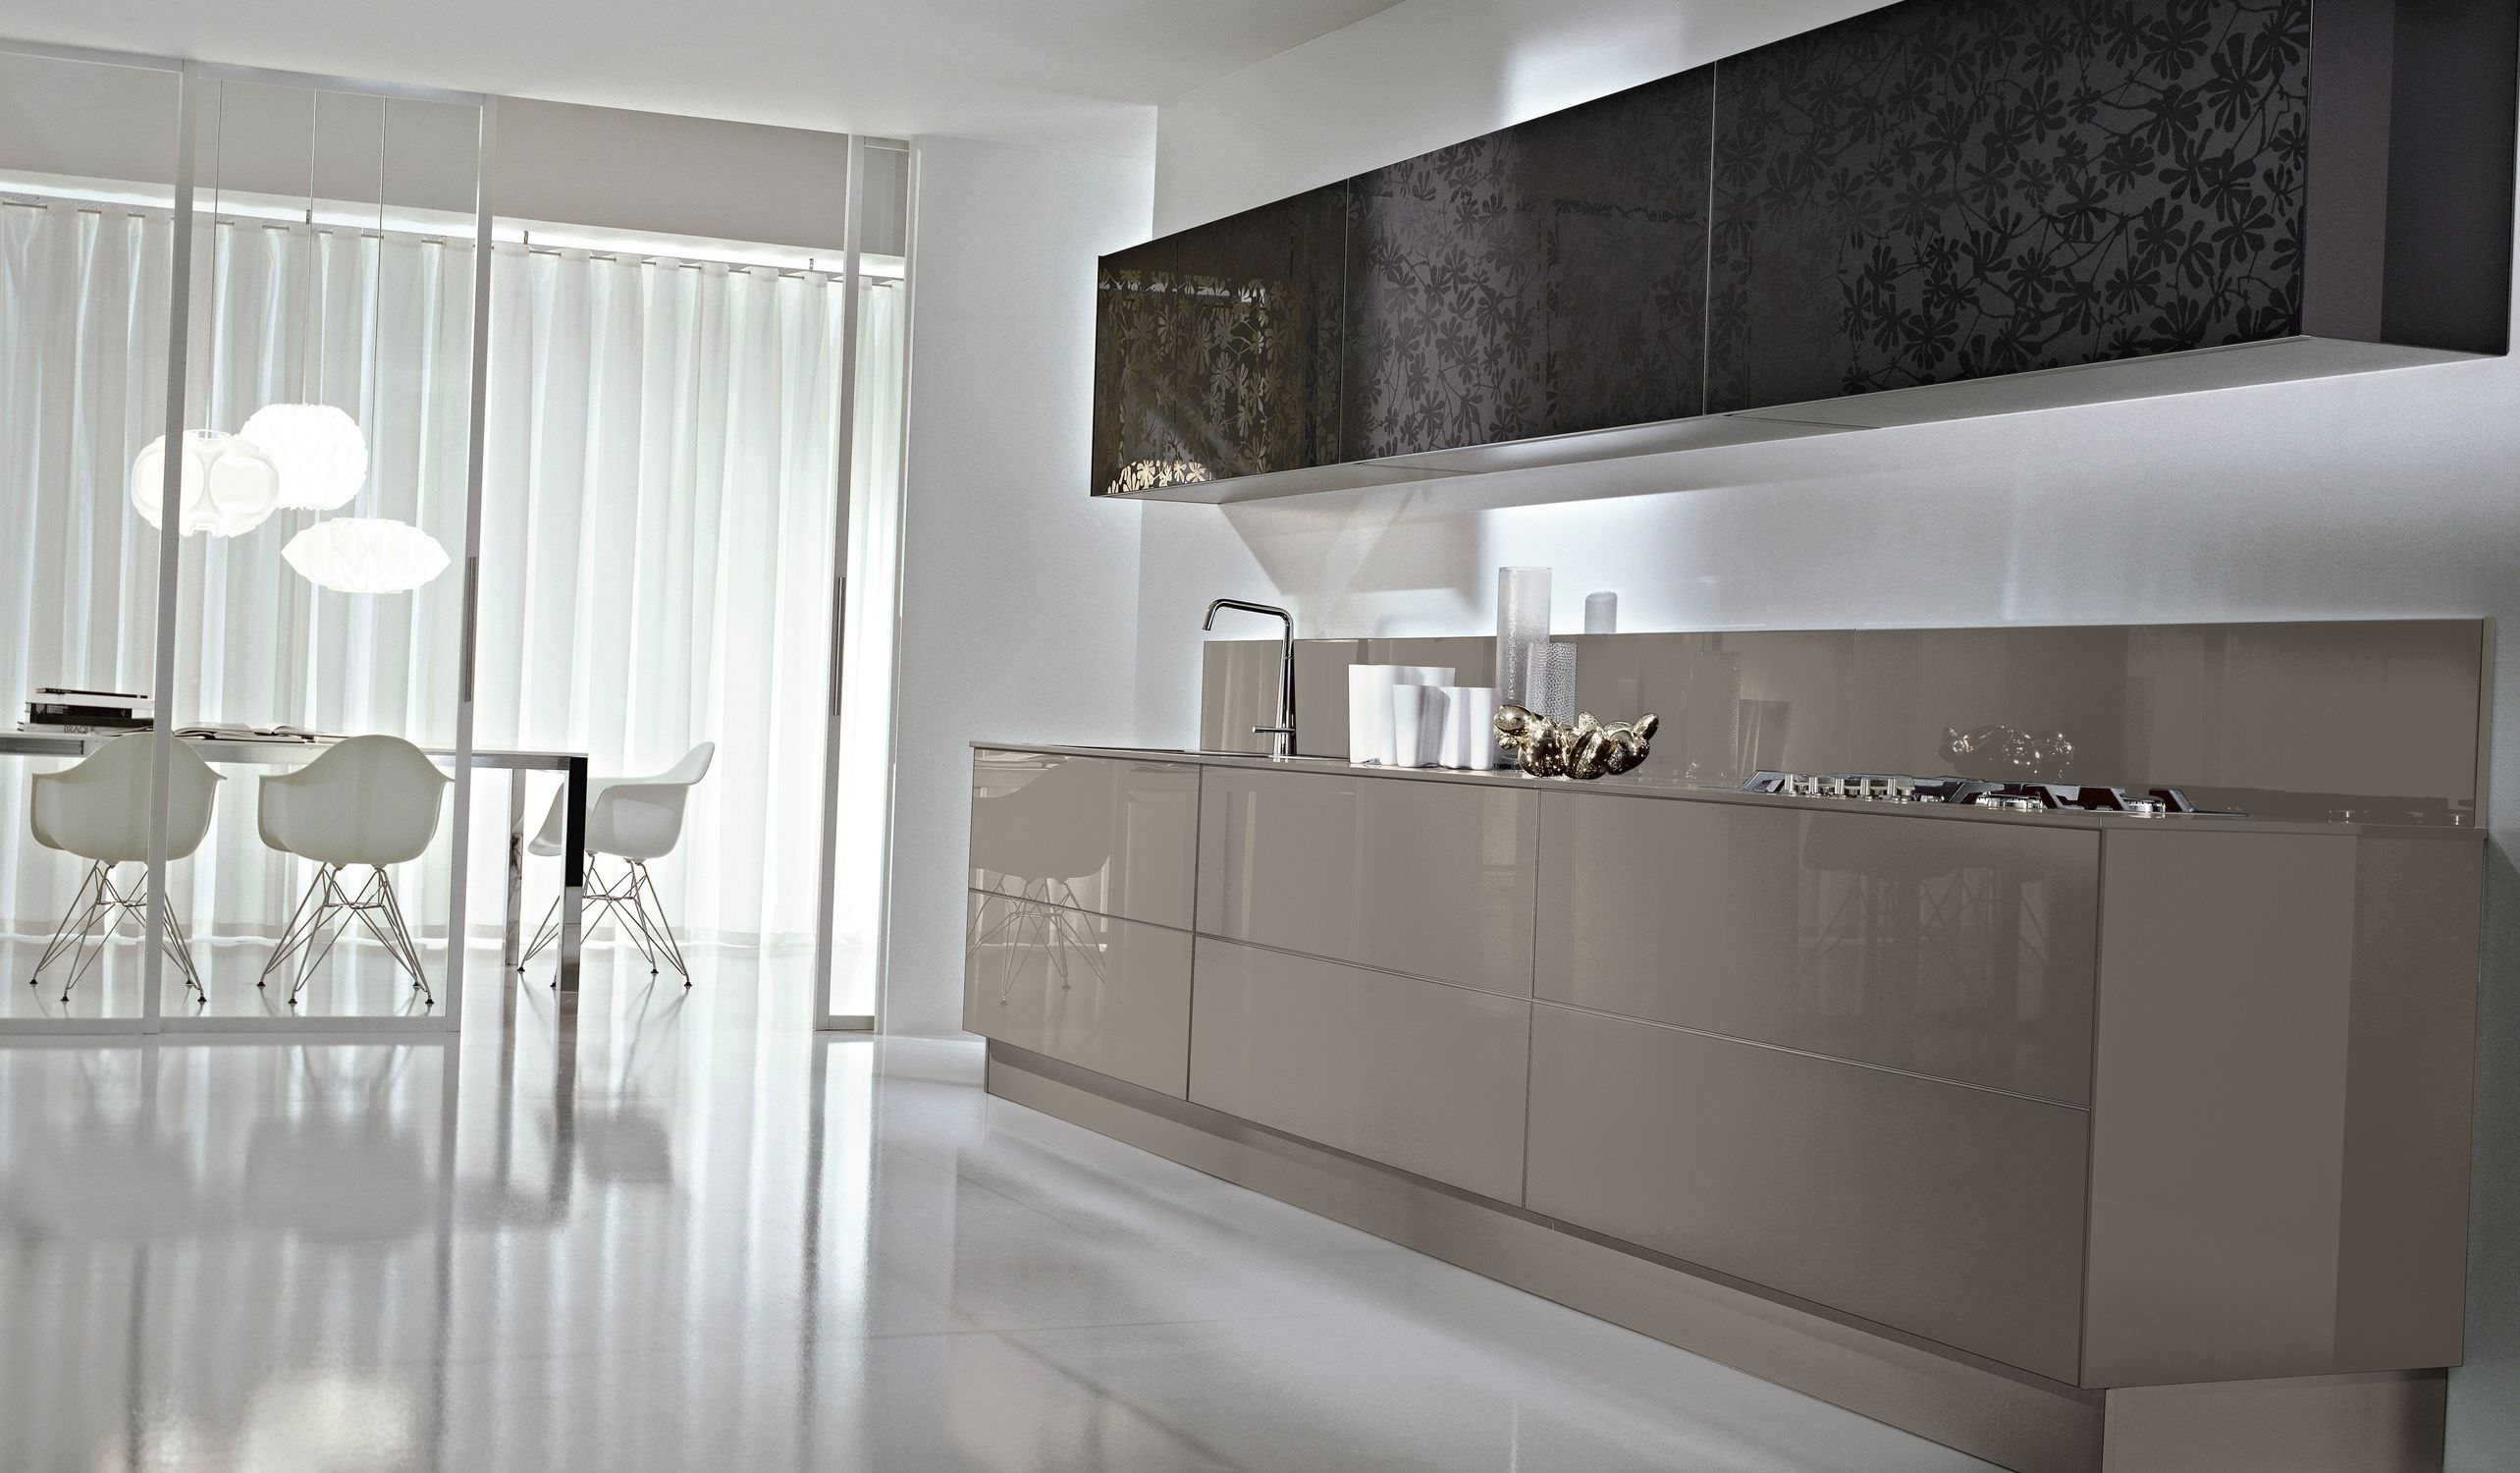 Cucina moderna / in vetro / laccata - SYSTEM COLLECTION - Pedini